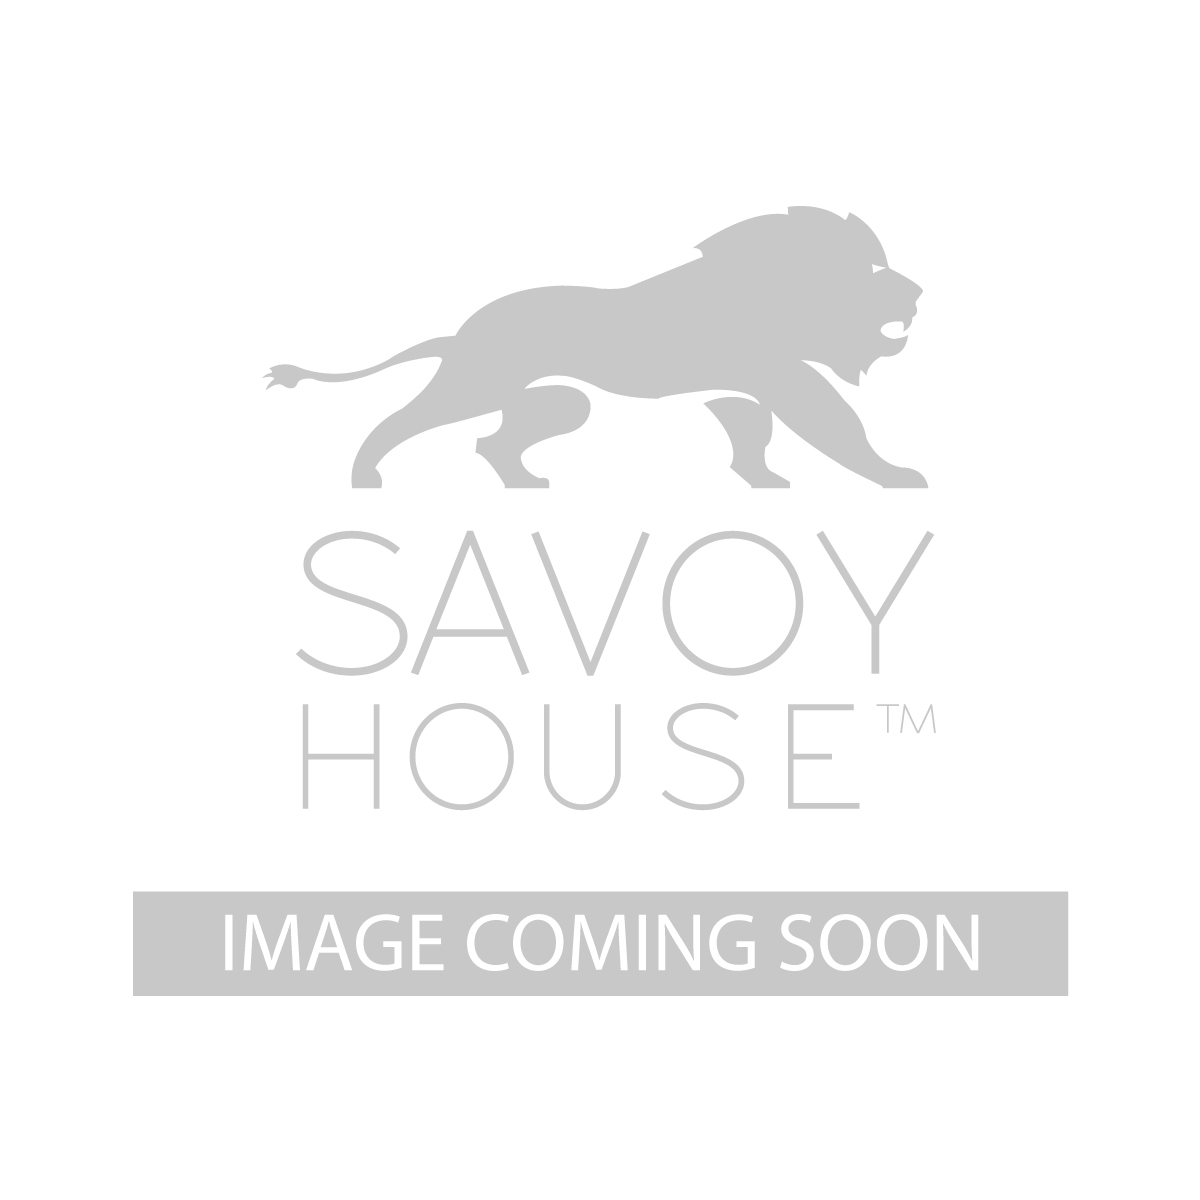 5 3805 40 Realto Post Lantern By Savoy House